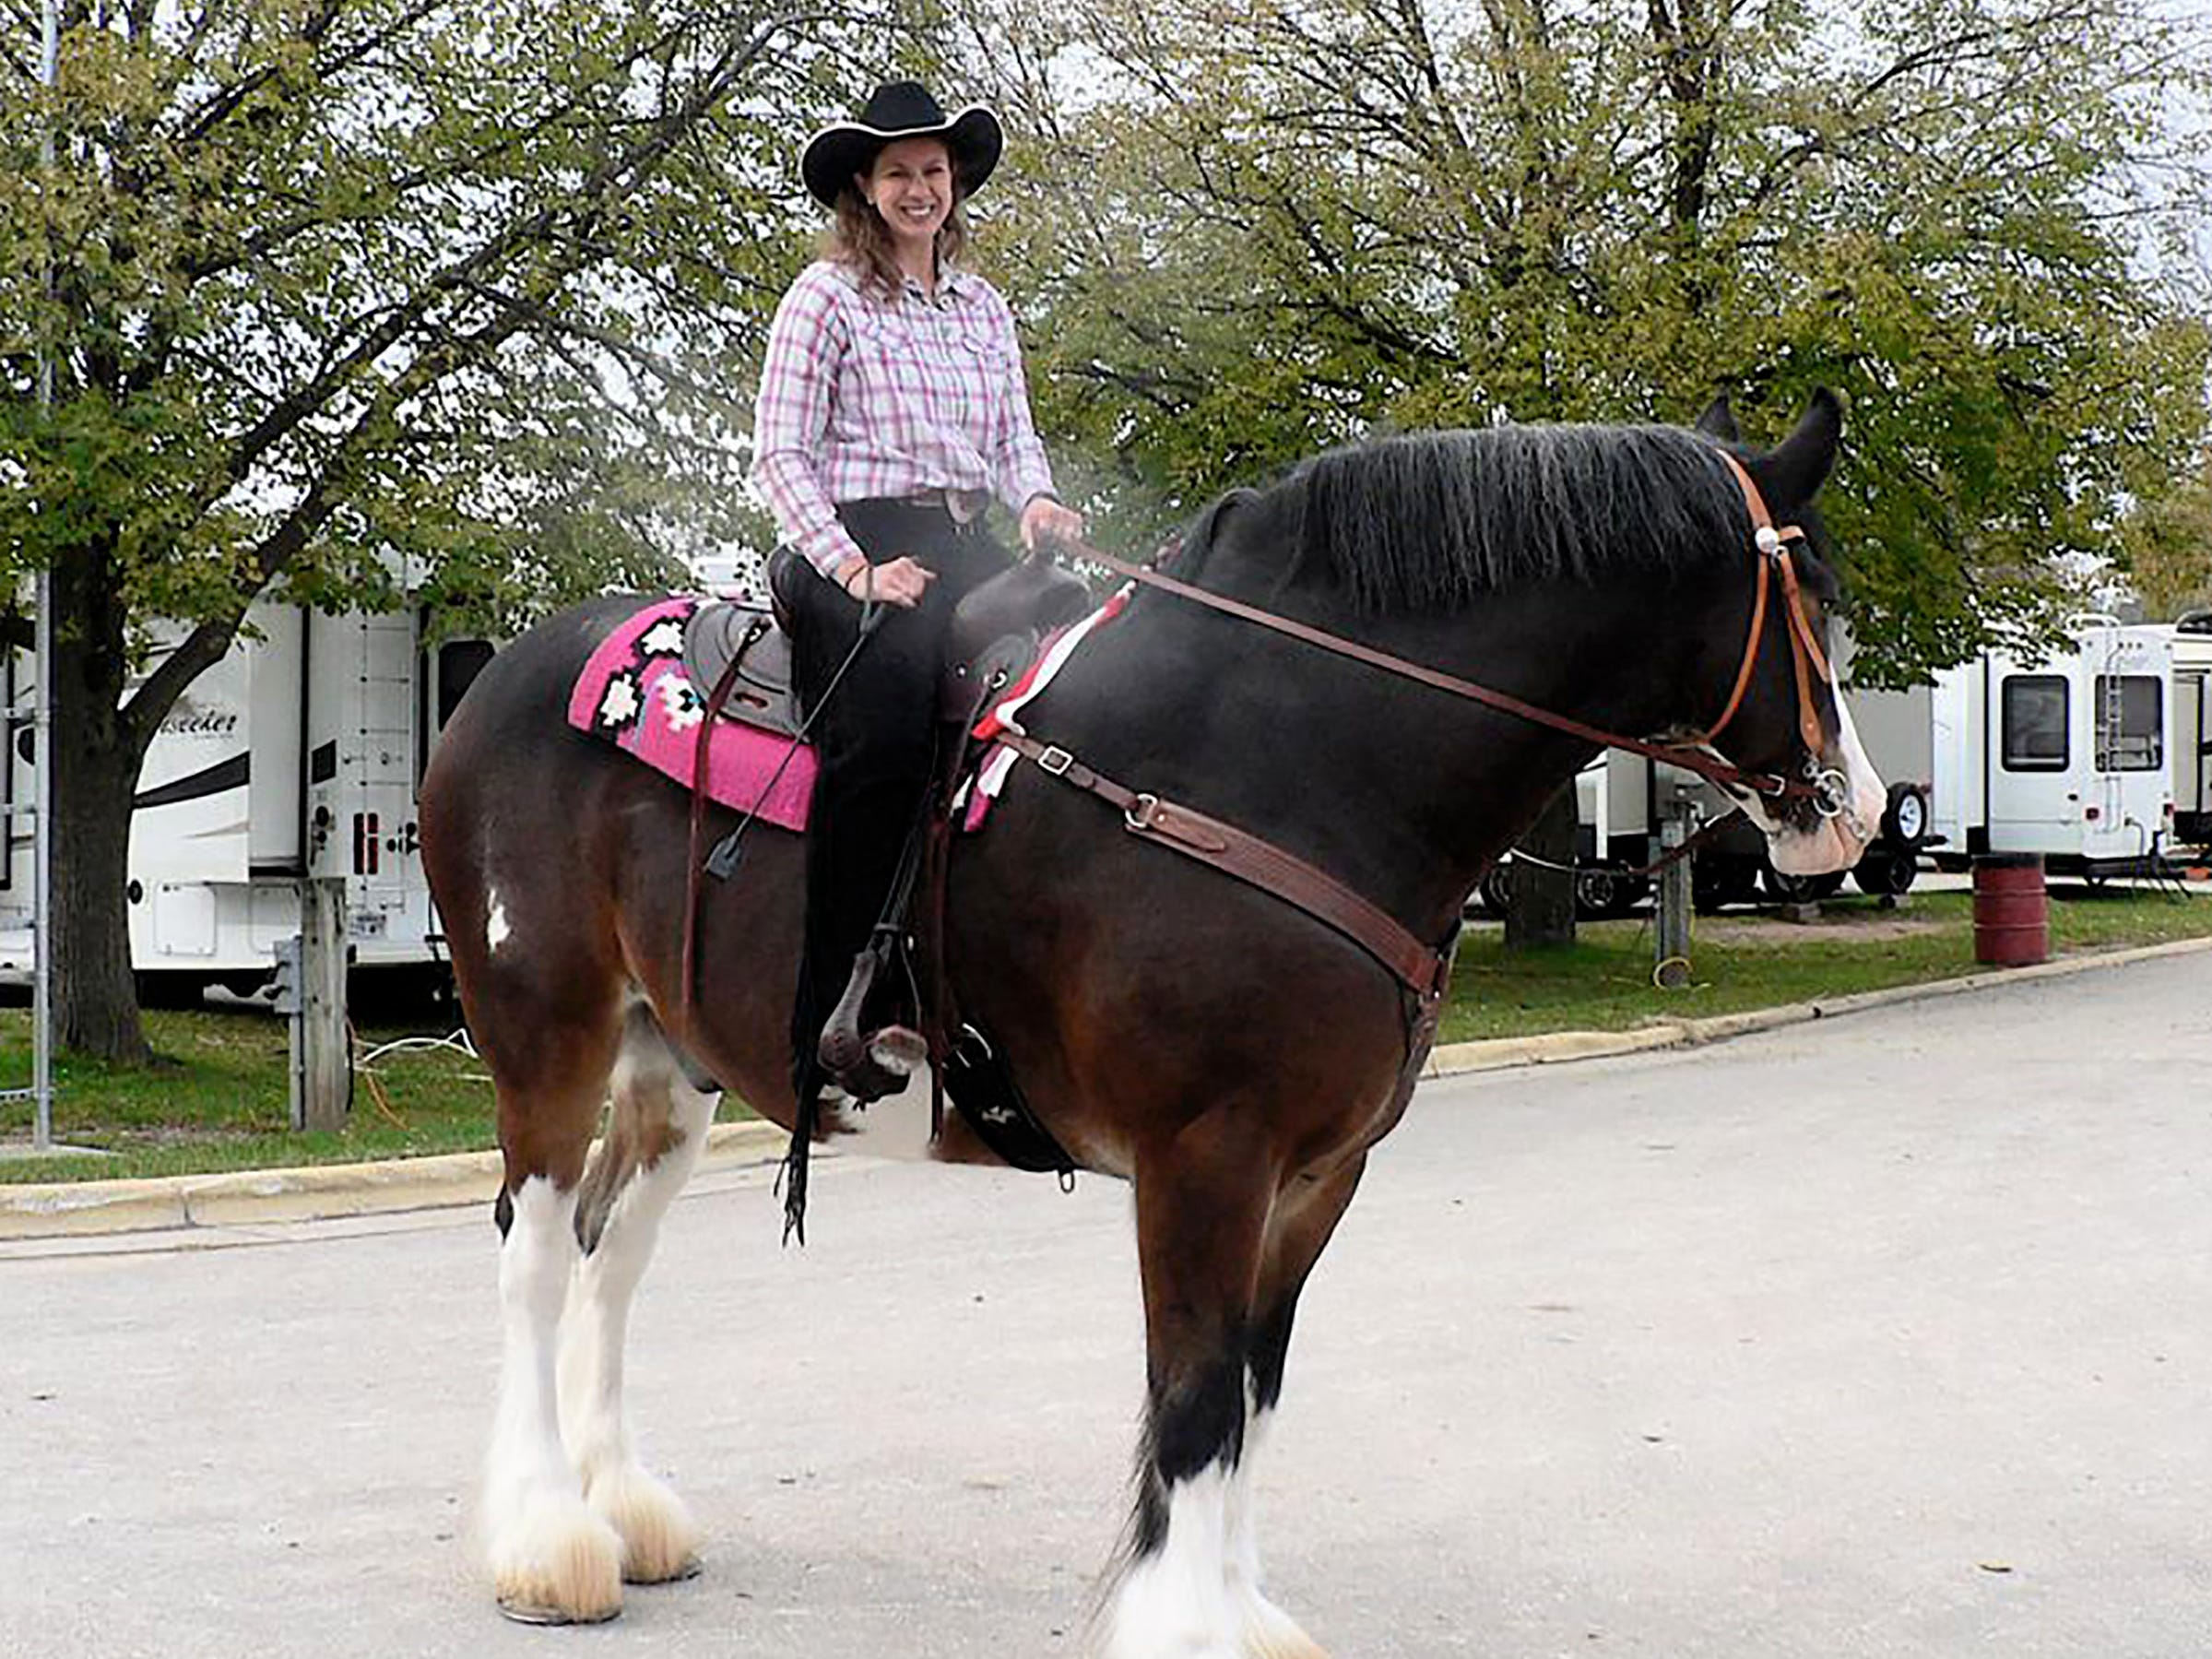 How do you mount such a tall horse? My dad helps, this rider says.